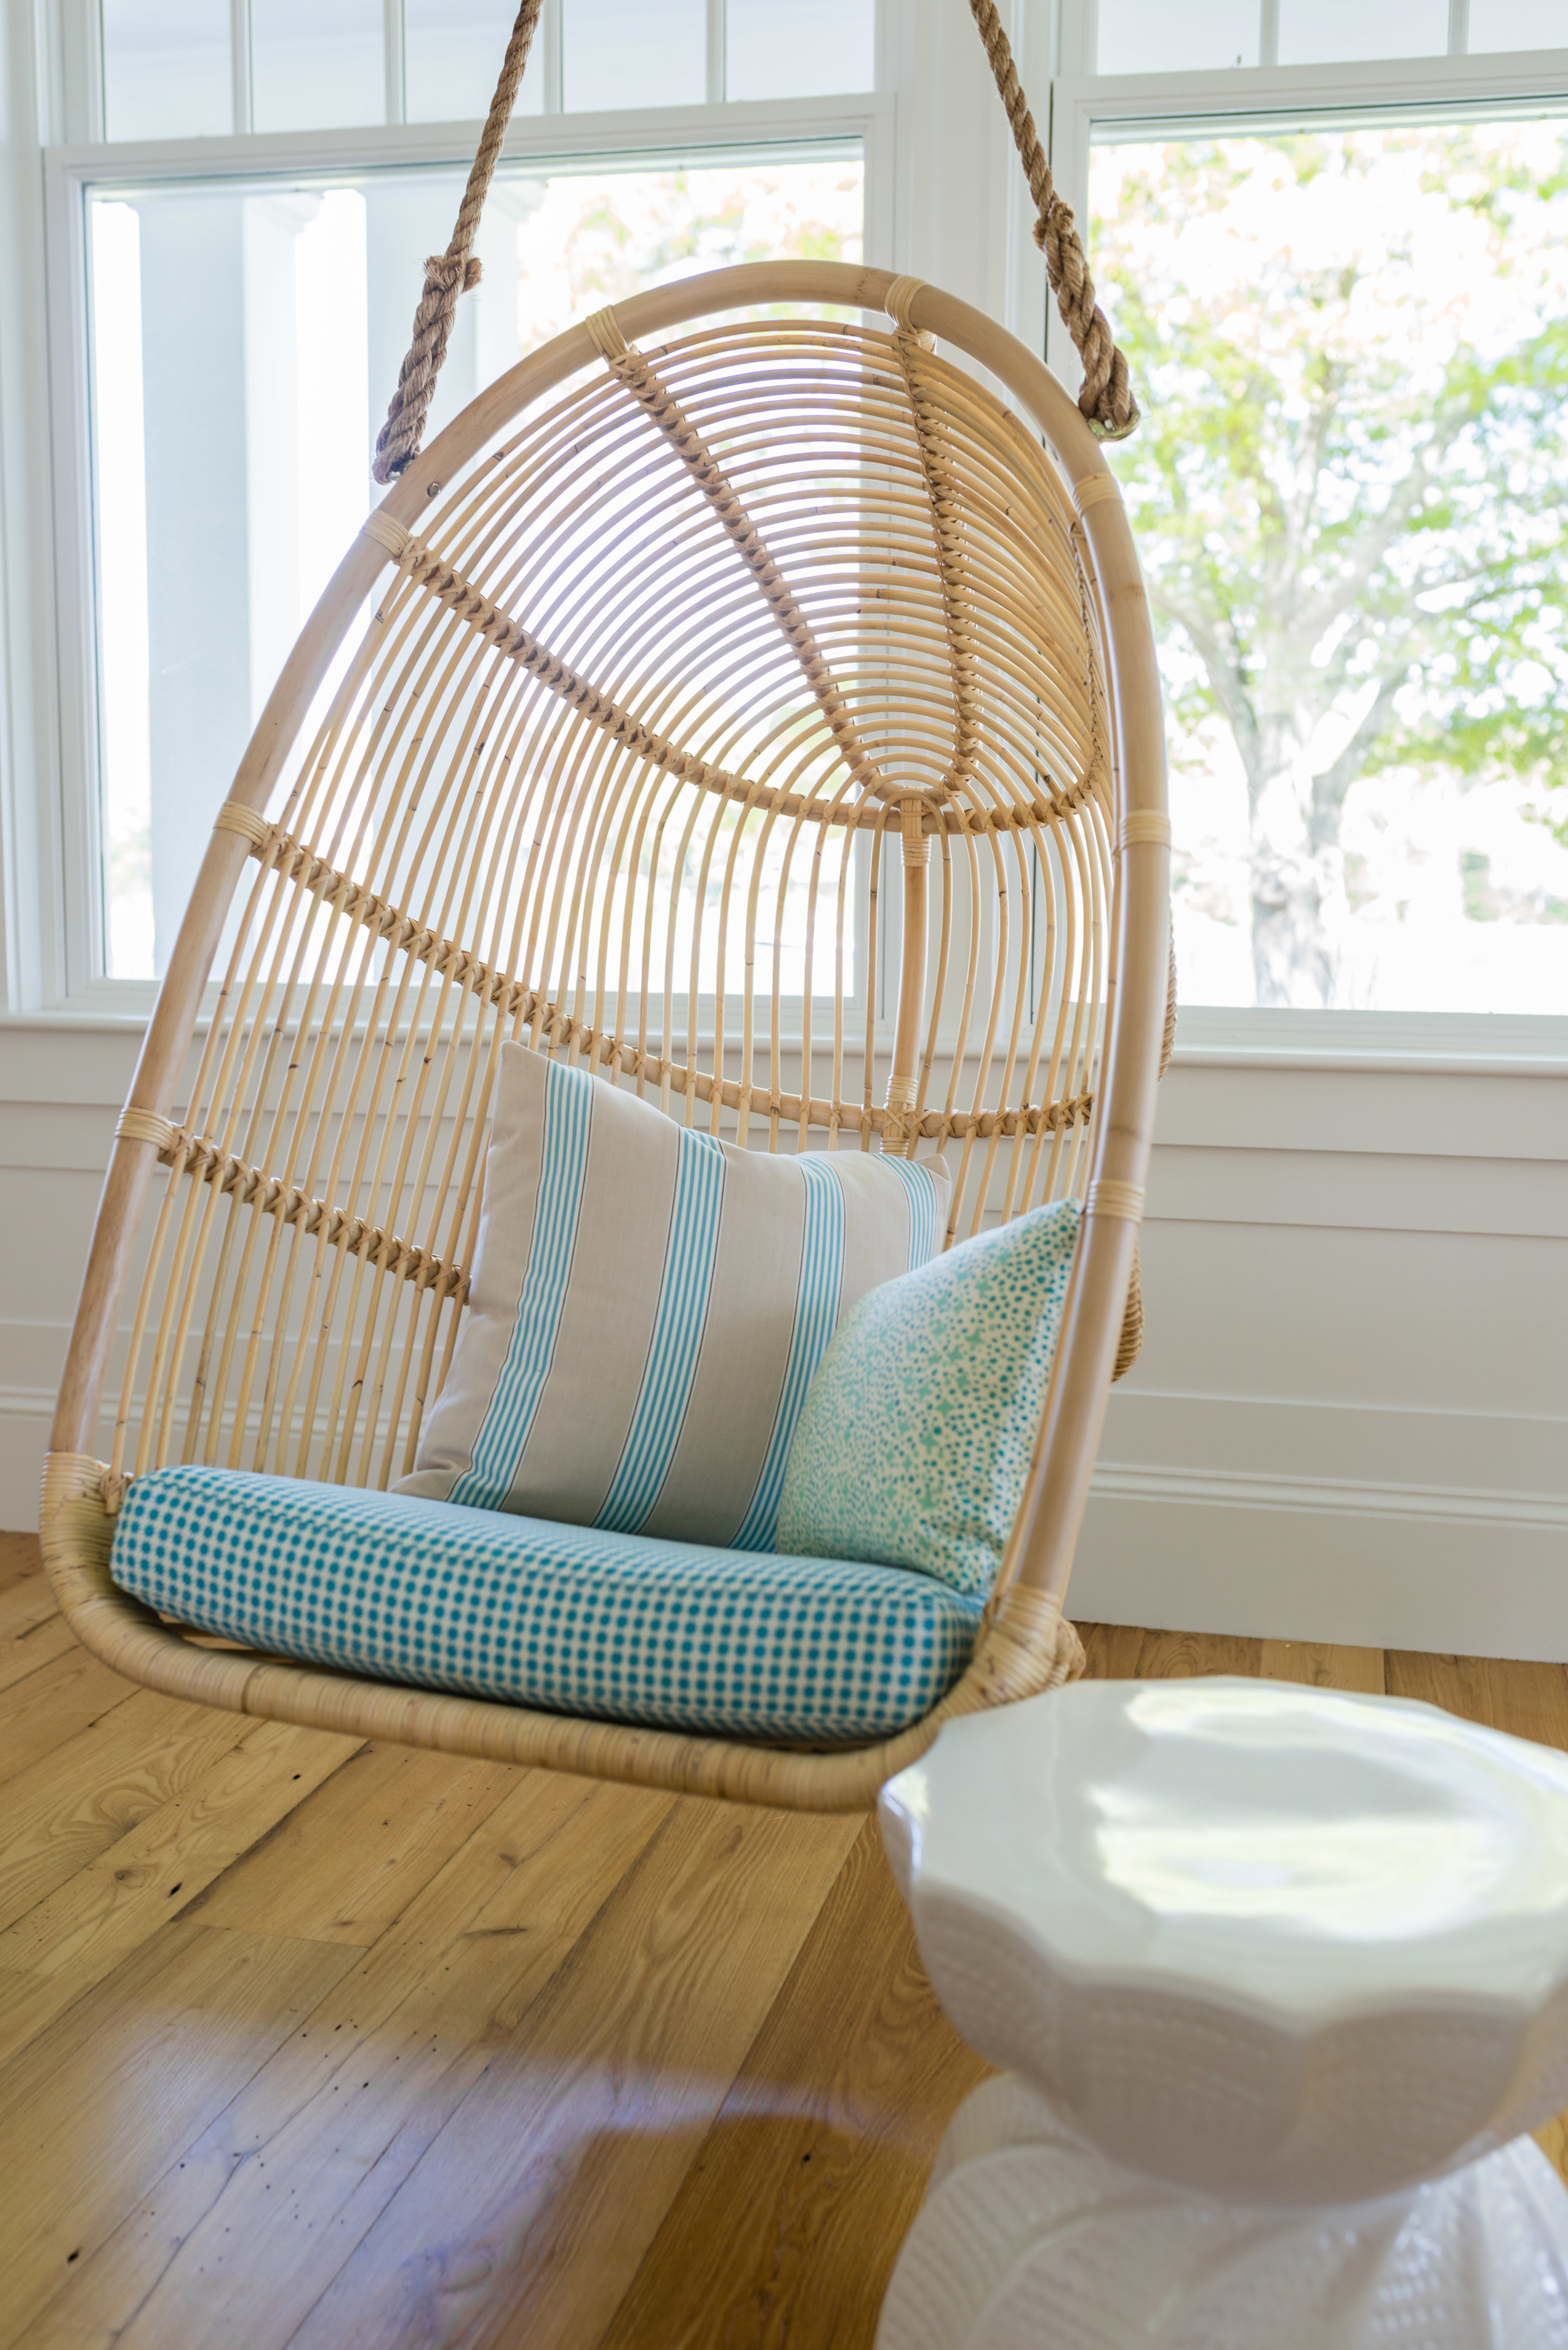 GALLERY: Hanging Chairs